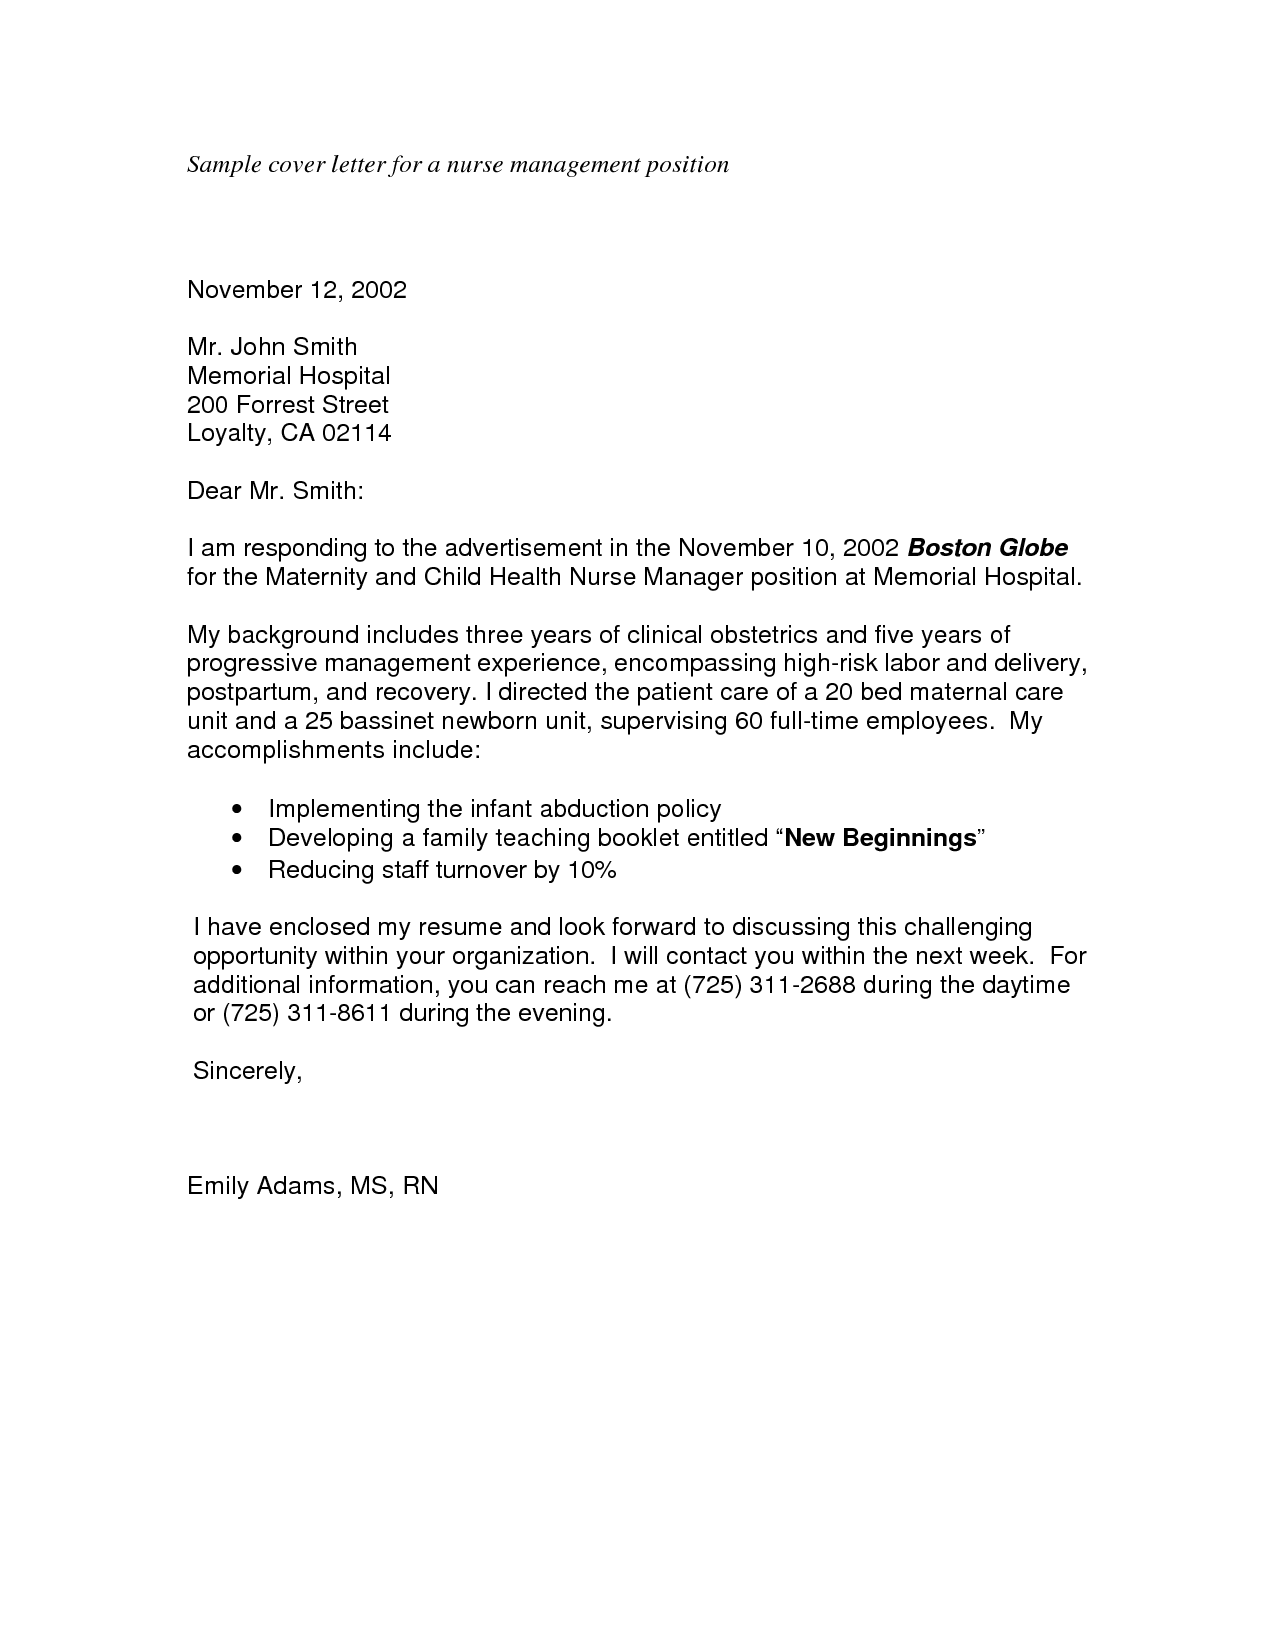 solicited cover letter pdf by rolo solicited application letter  solicited application